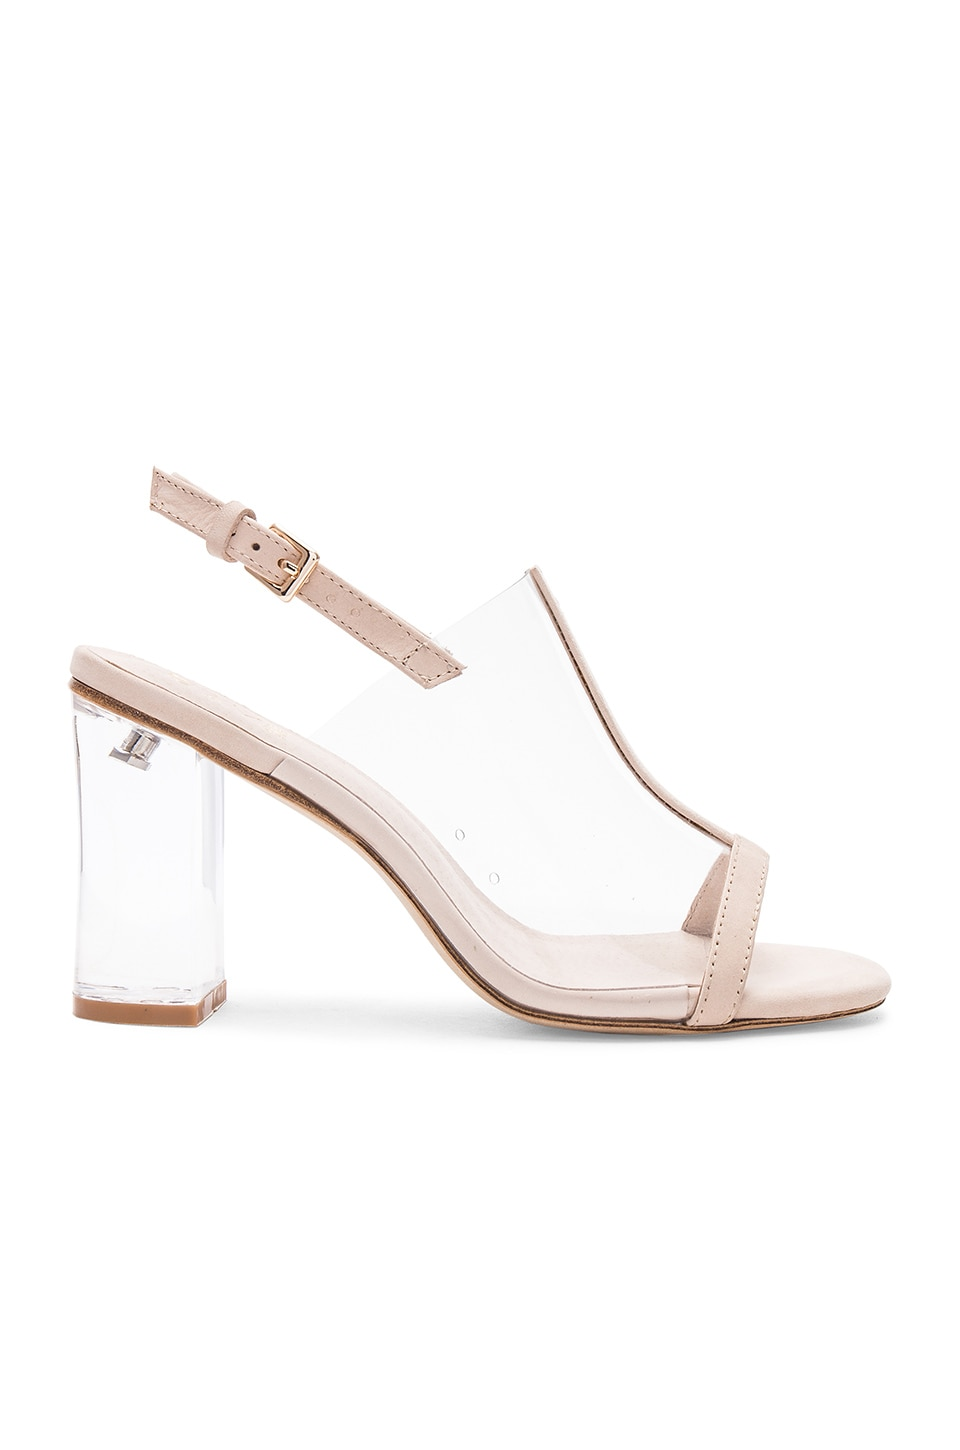 RAYE Aiden Heel in Nude